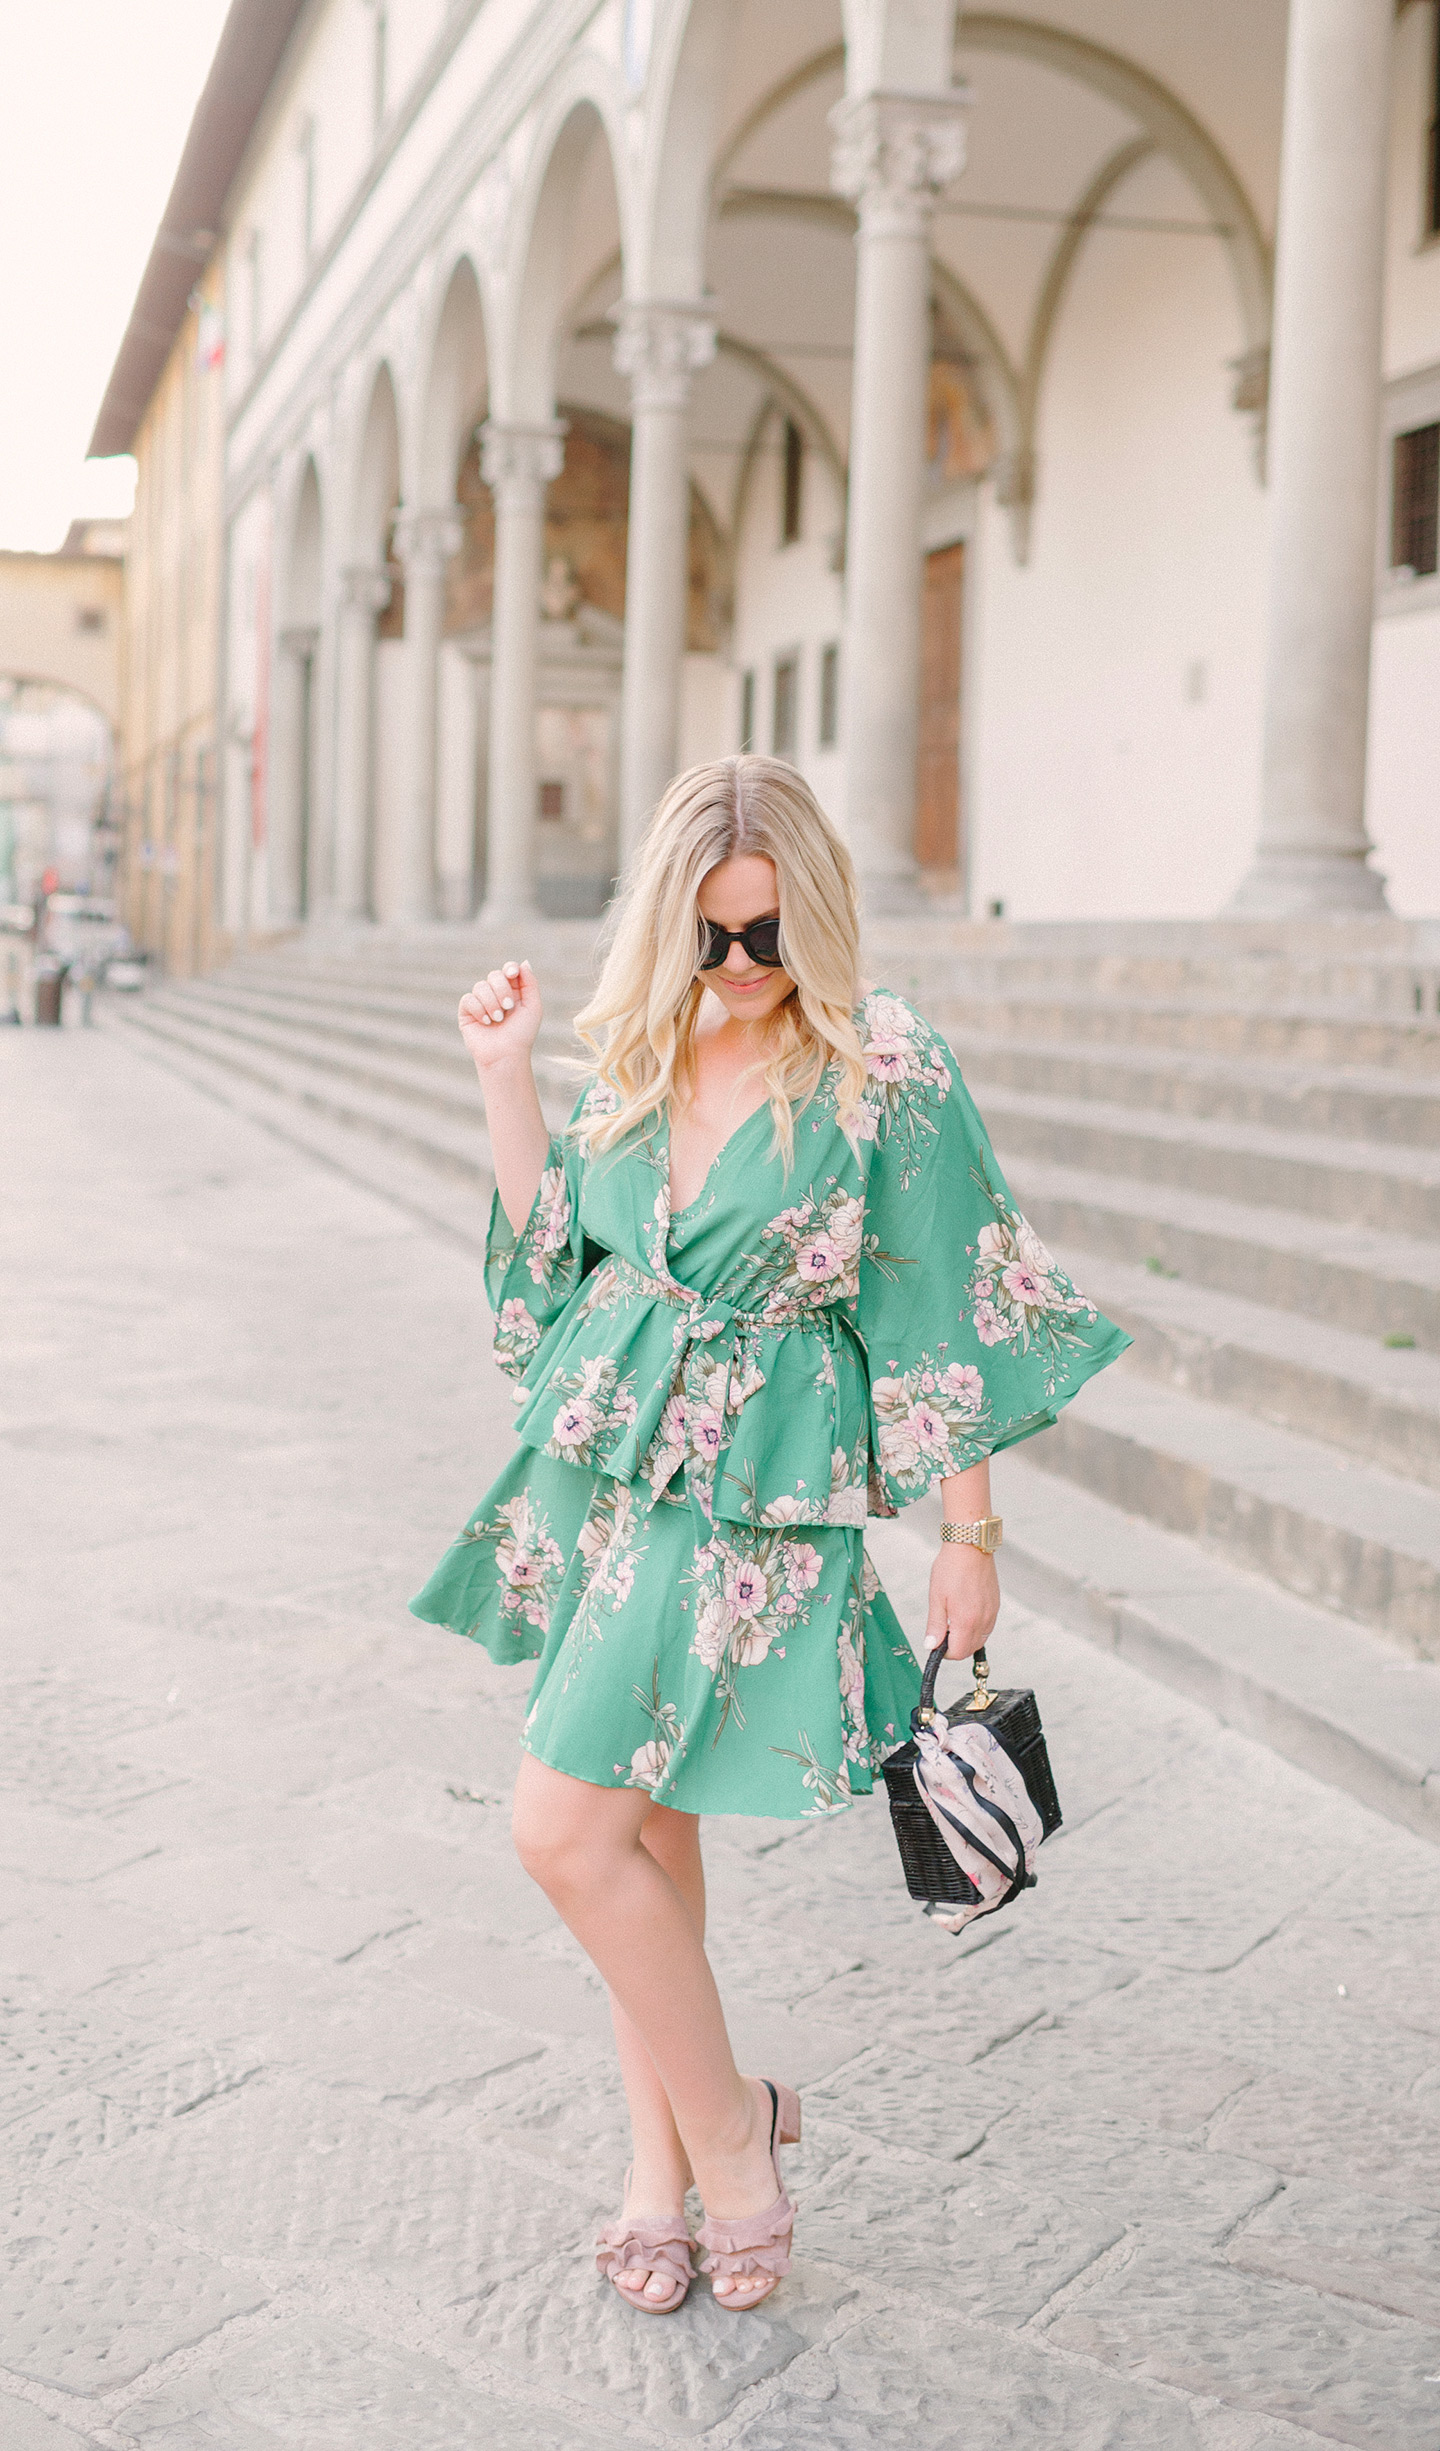 Green Floral Kimono Dress in Florence, Italy